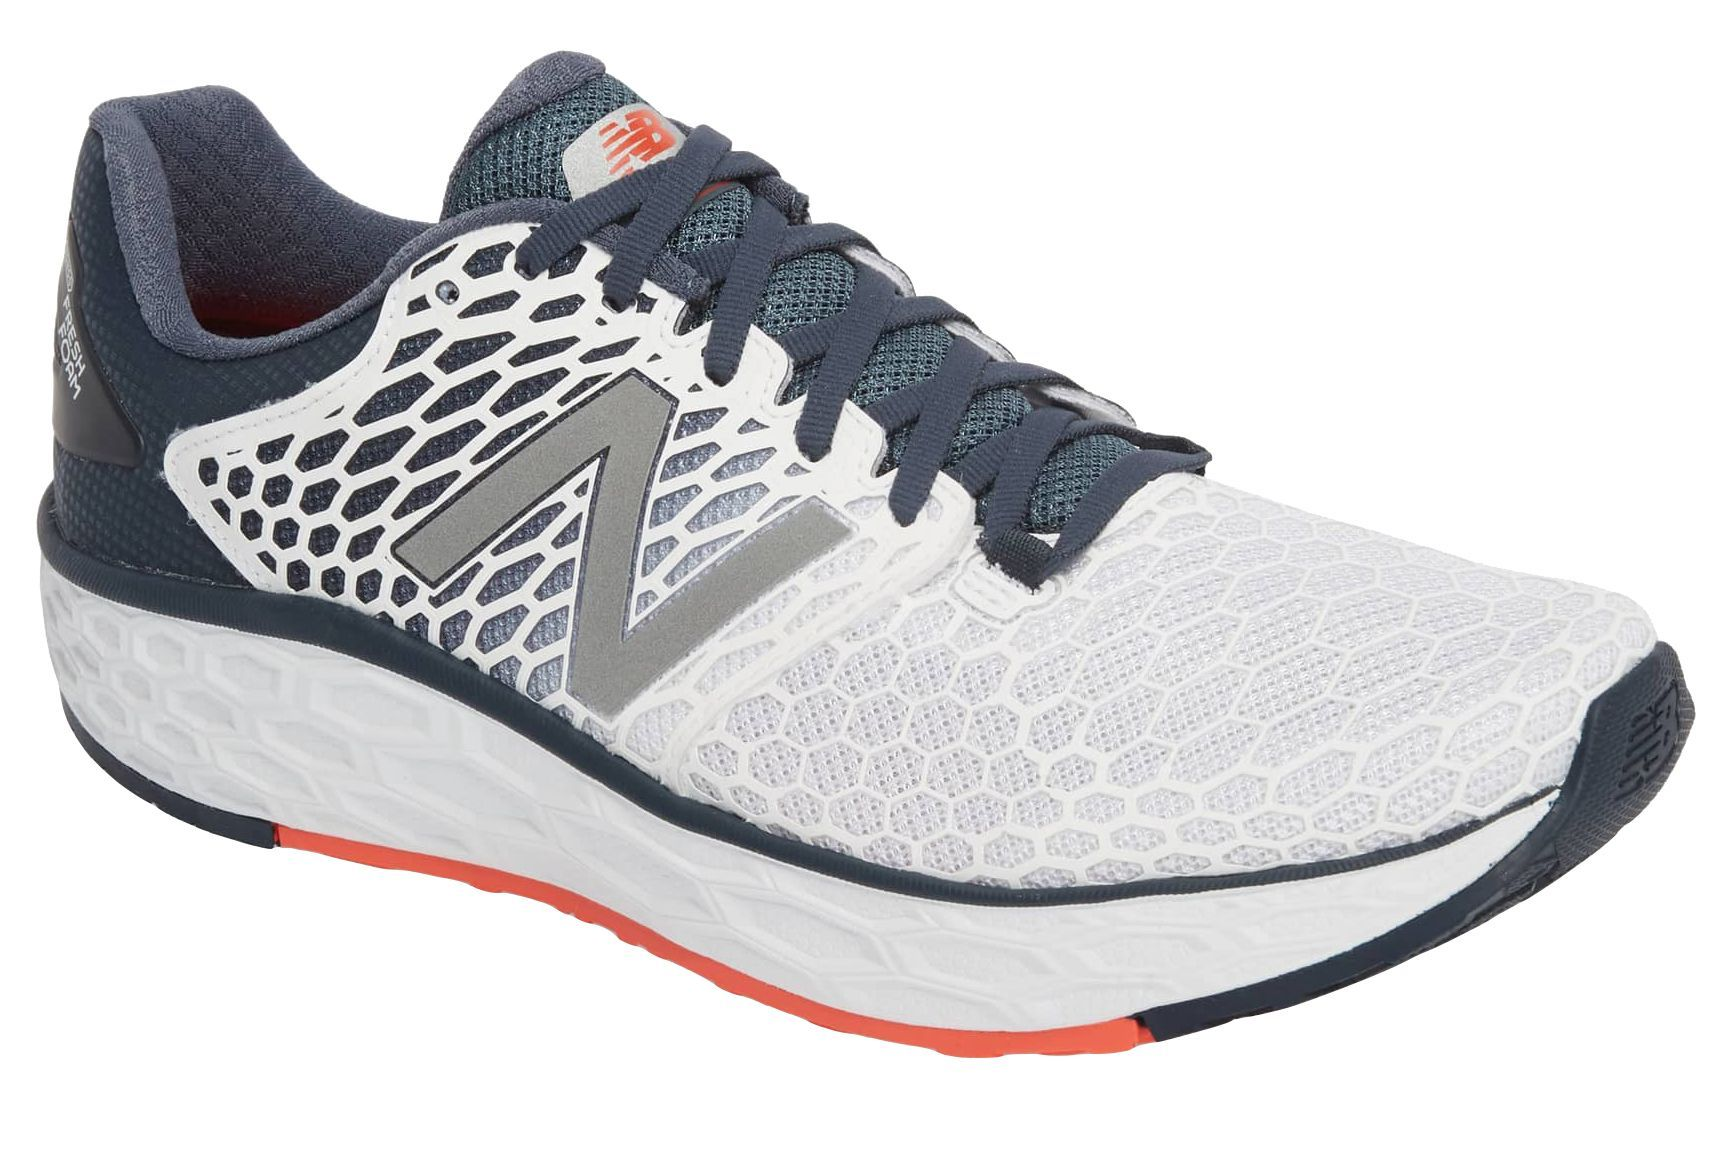 ce200a0f36c2 13 Best Running Sneakers For Men - Stylish Running Sneakers